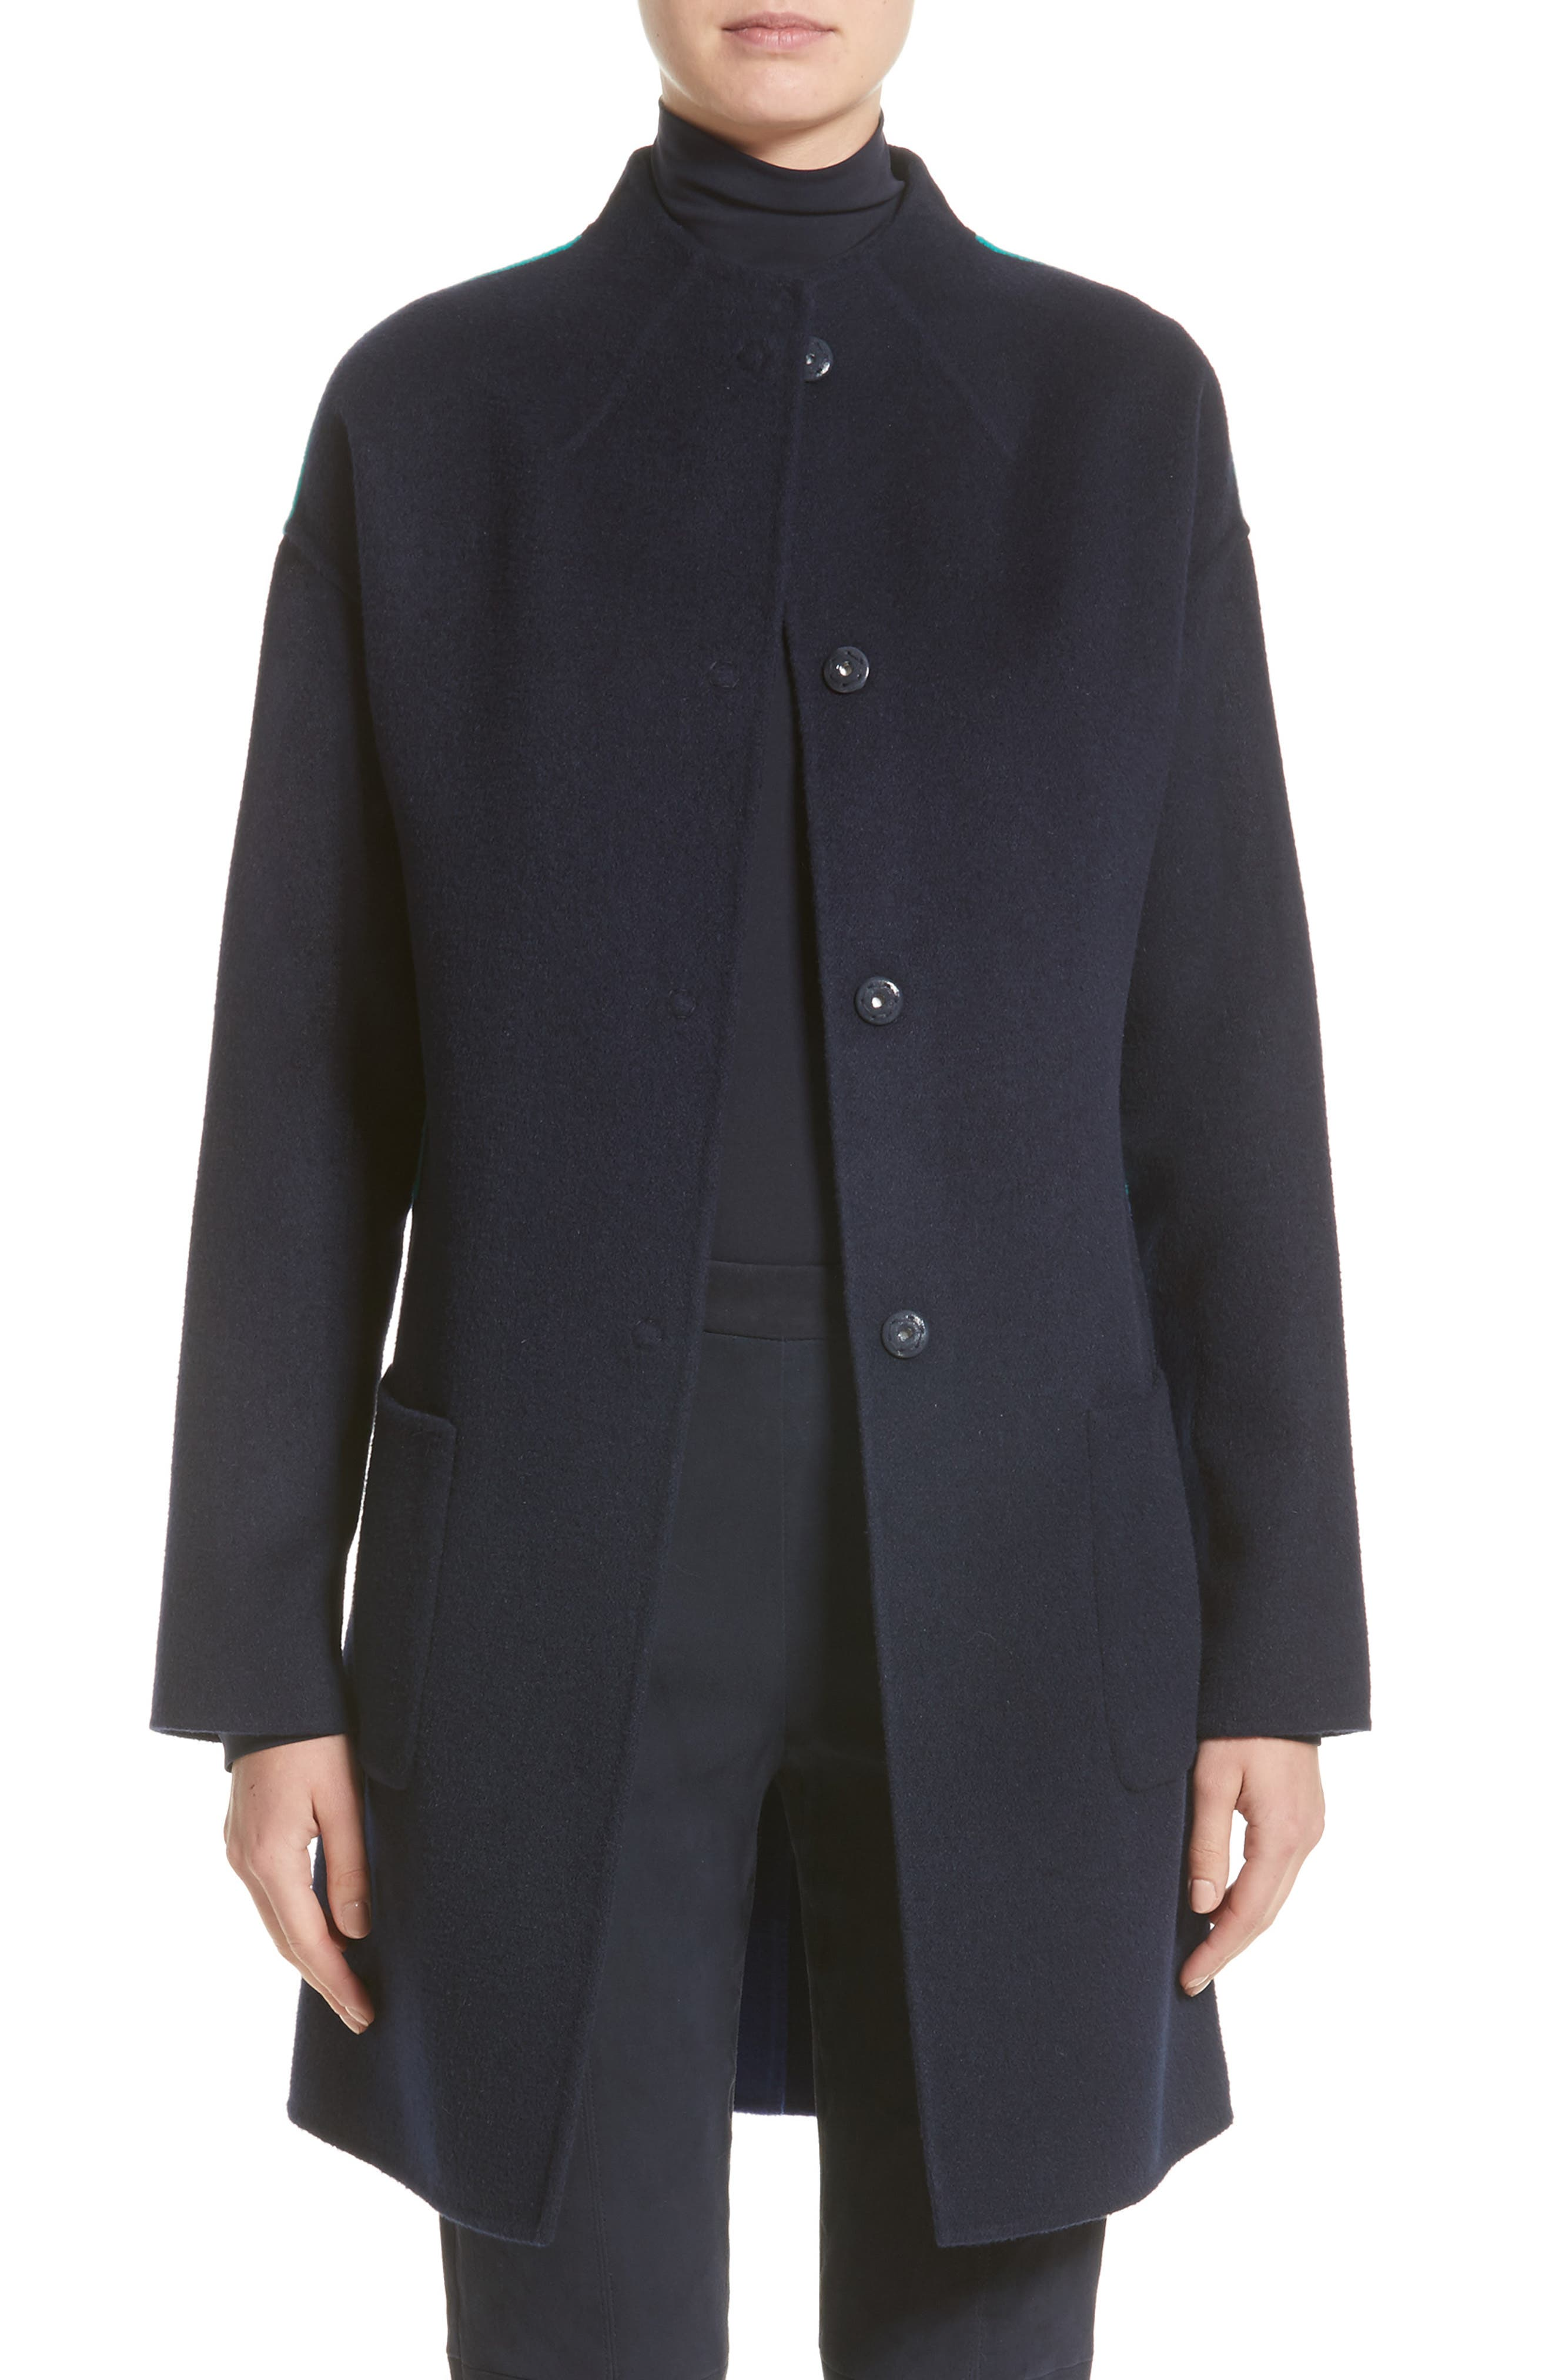 Main Image - St. John Collection Colorblock Double Face Wool Blend Coat